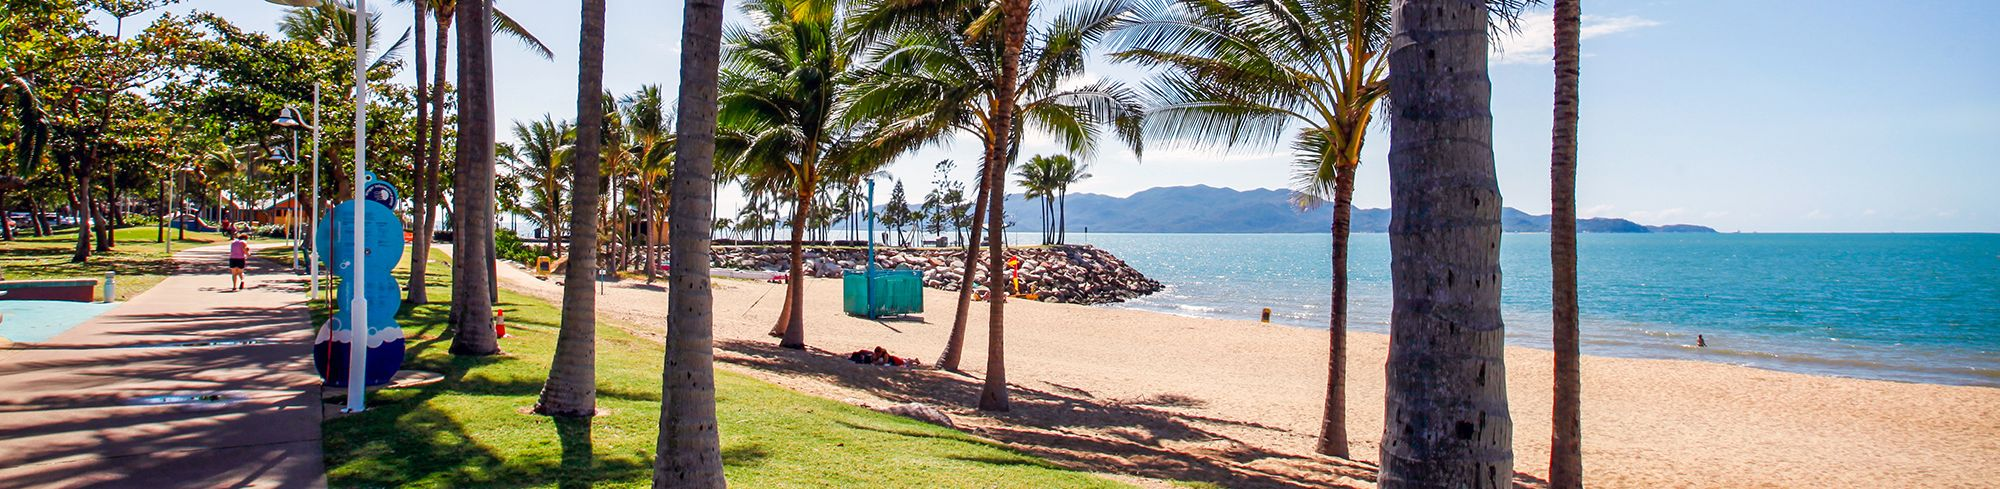 The-Strand-Townsville